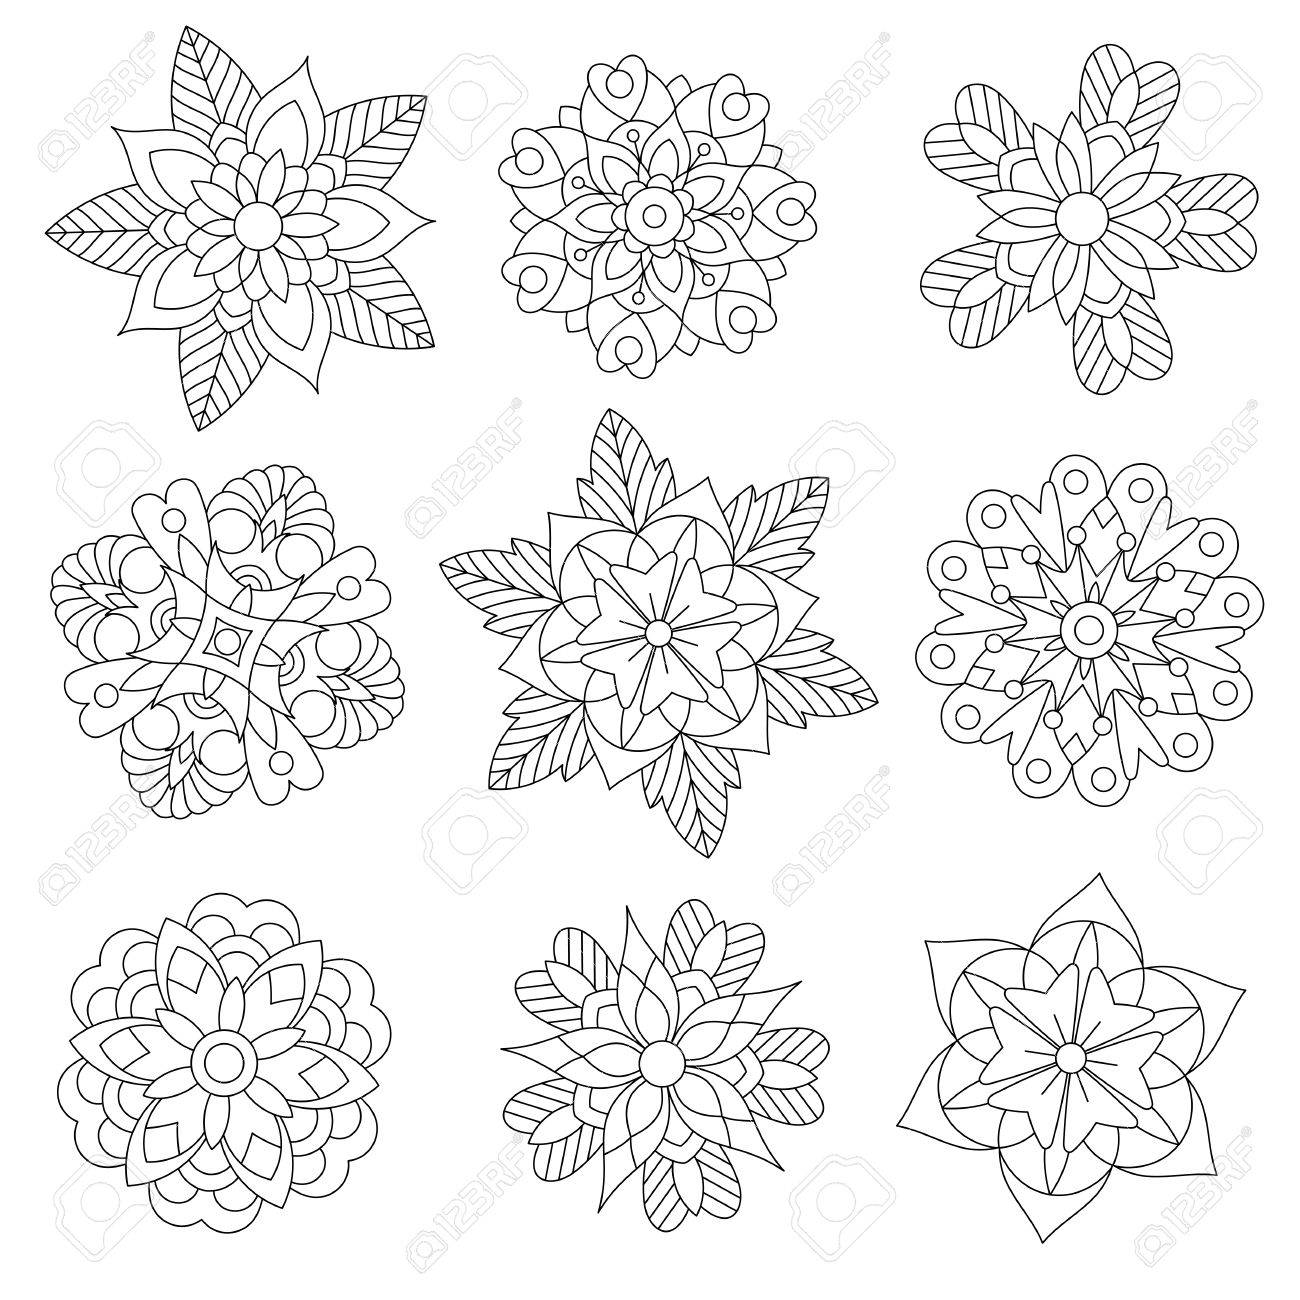 Coloring Page Of Christmas Floral Decorations. Collection Of ...